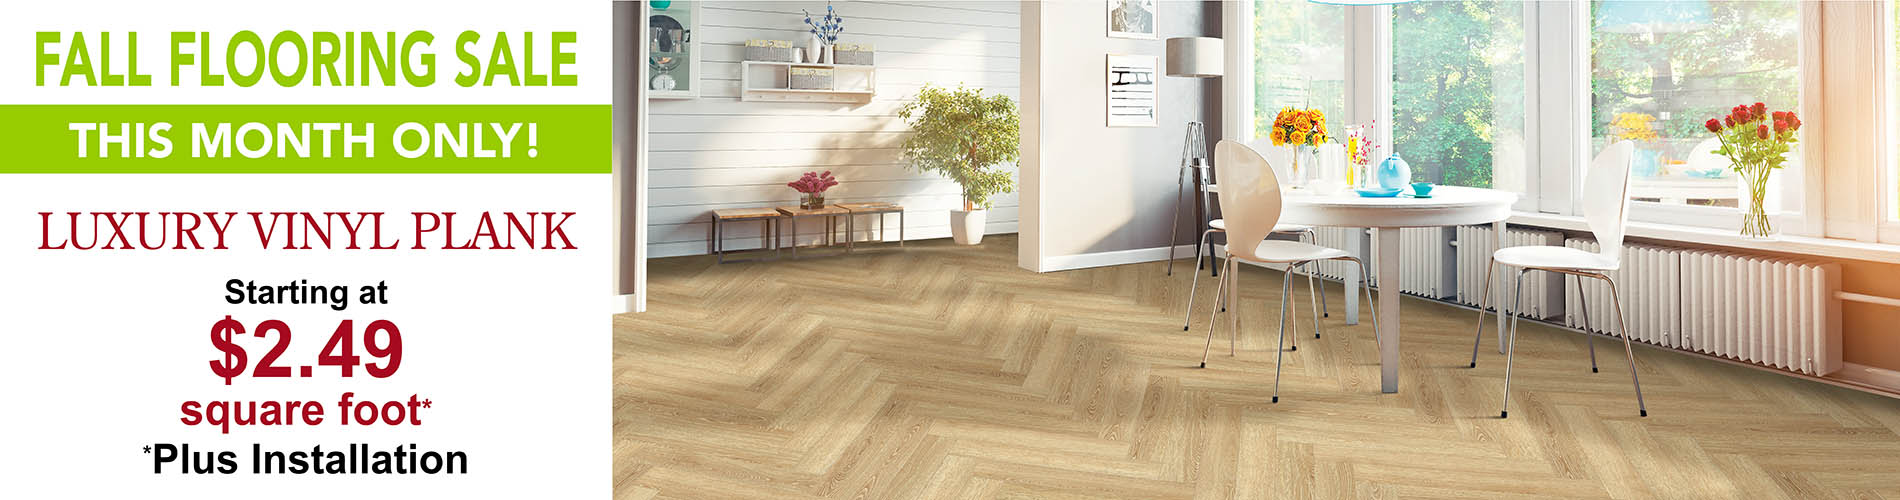 Fall Flooring Sale This Month Only! Luxury vinyl plank starting at $2.49 sq.ft. (plus installation). Only at Floors To Go of Indianapolis